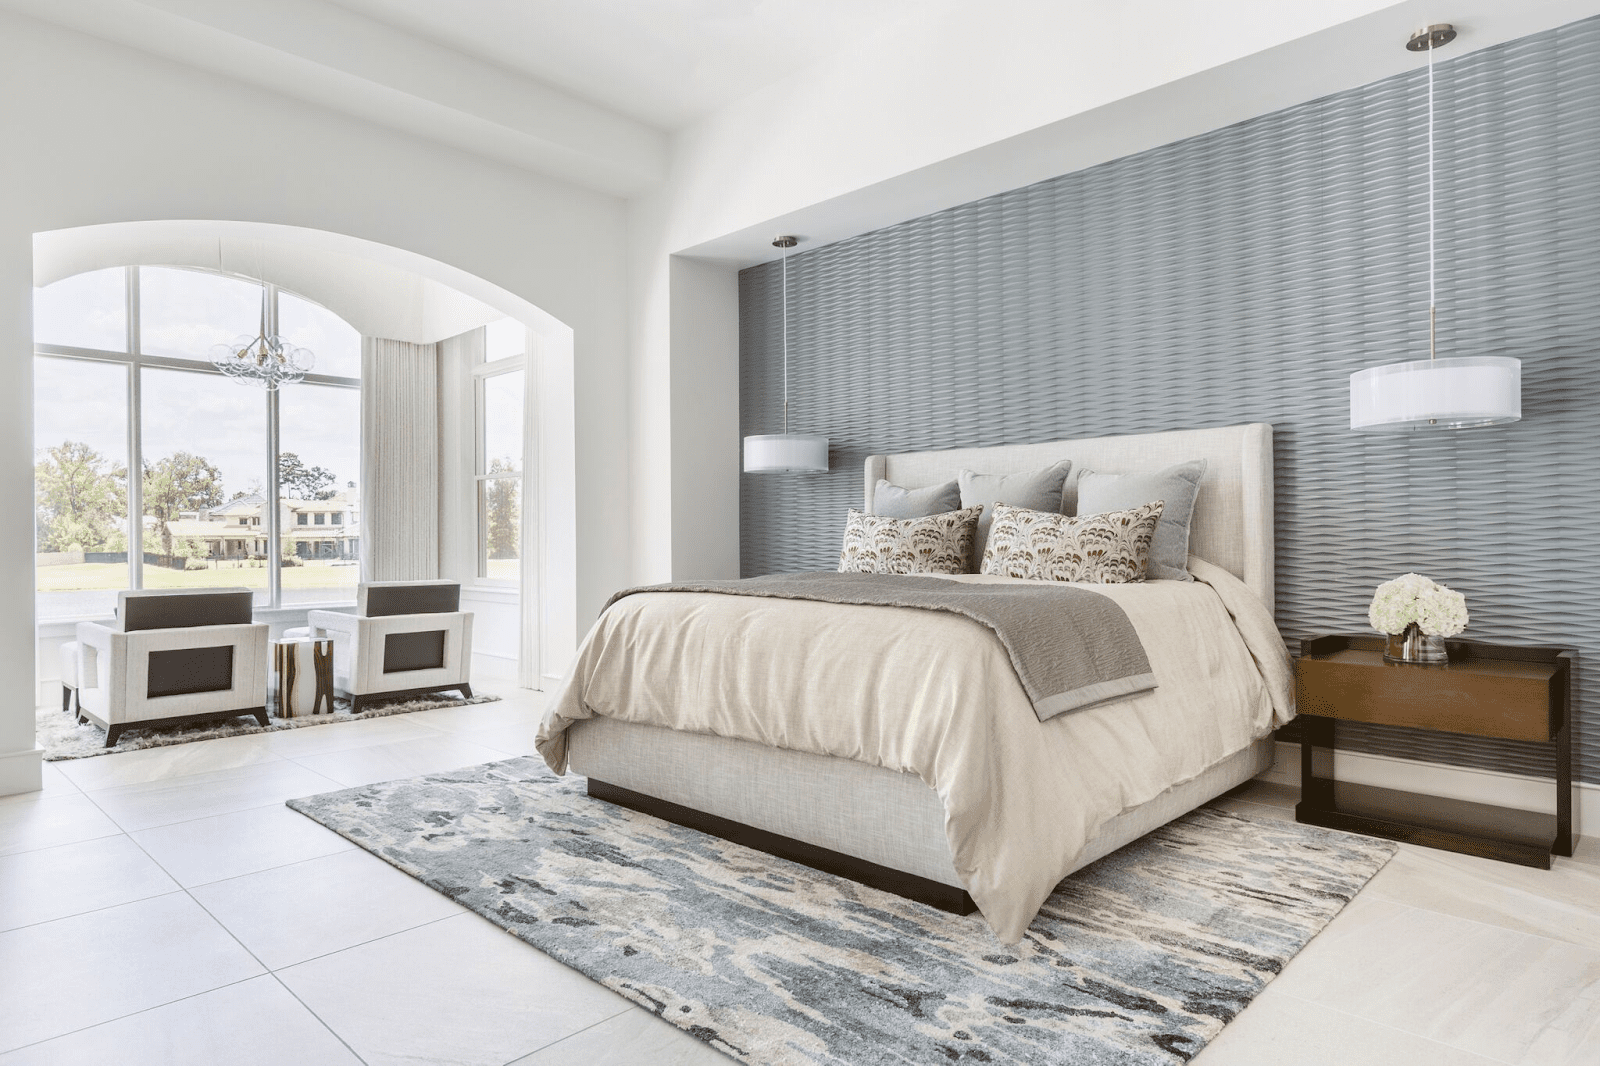 5 Beautiful Wallpapered Bedrooms